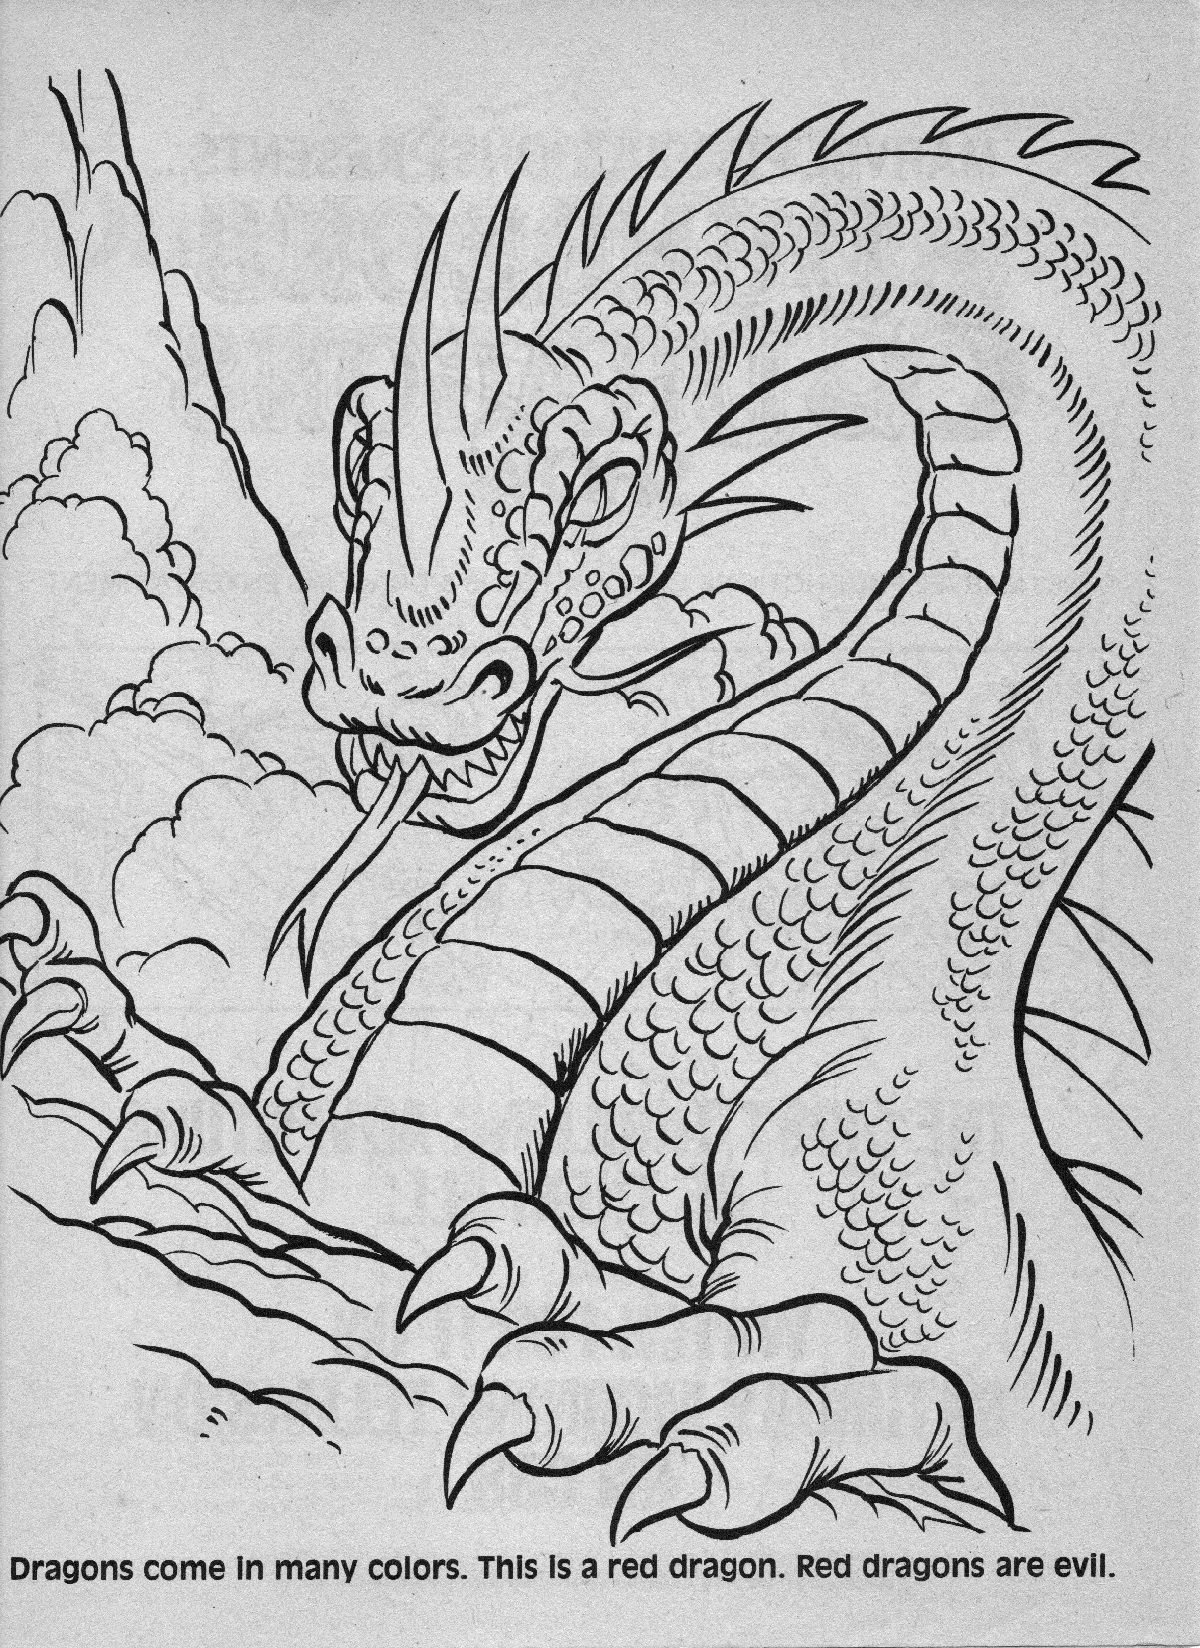 dungeons and dragons coloring pages - photo#34